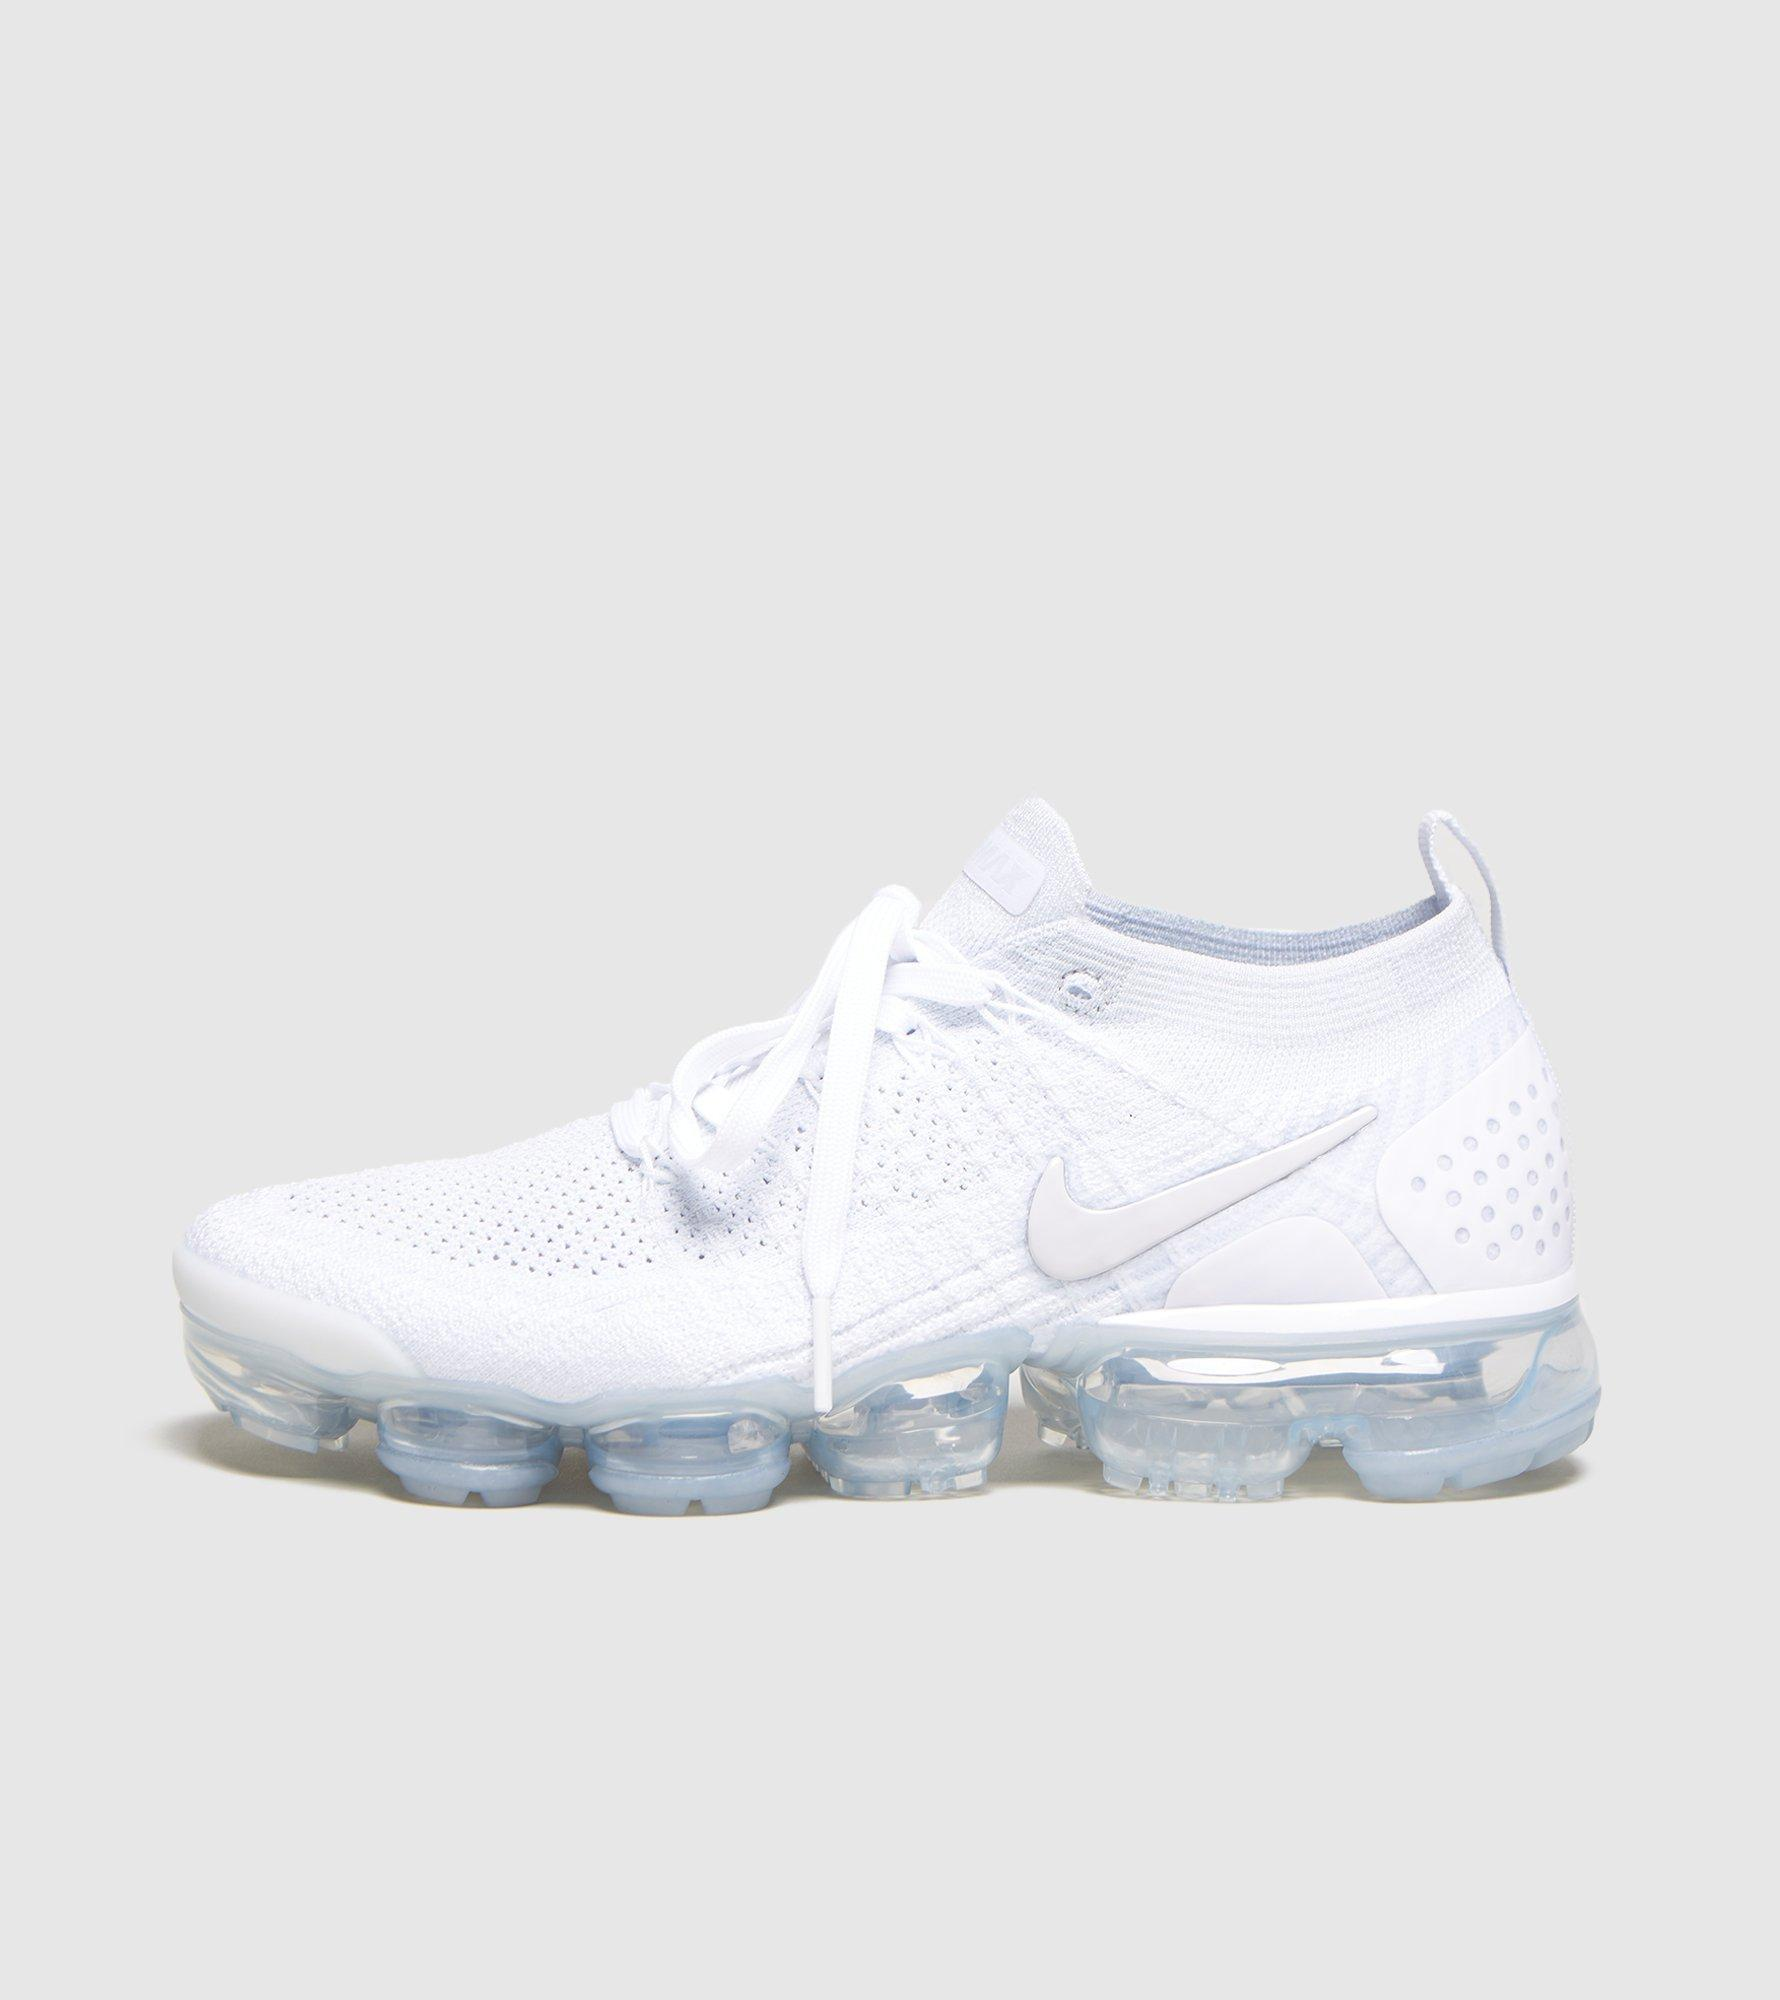 quality design f8c85 21544 White Air Vapormax Flyknit 2 Women's